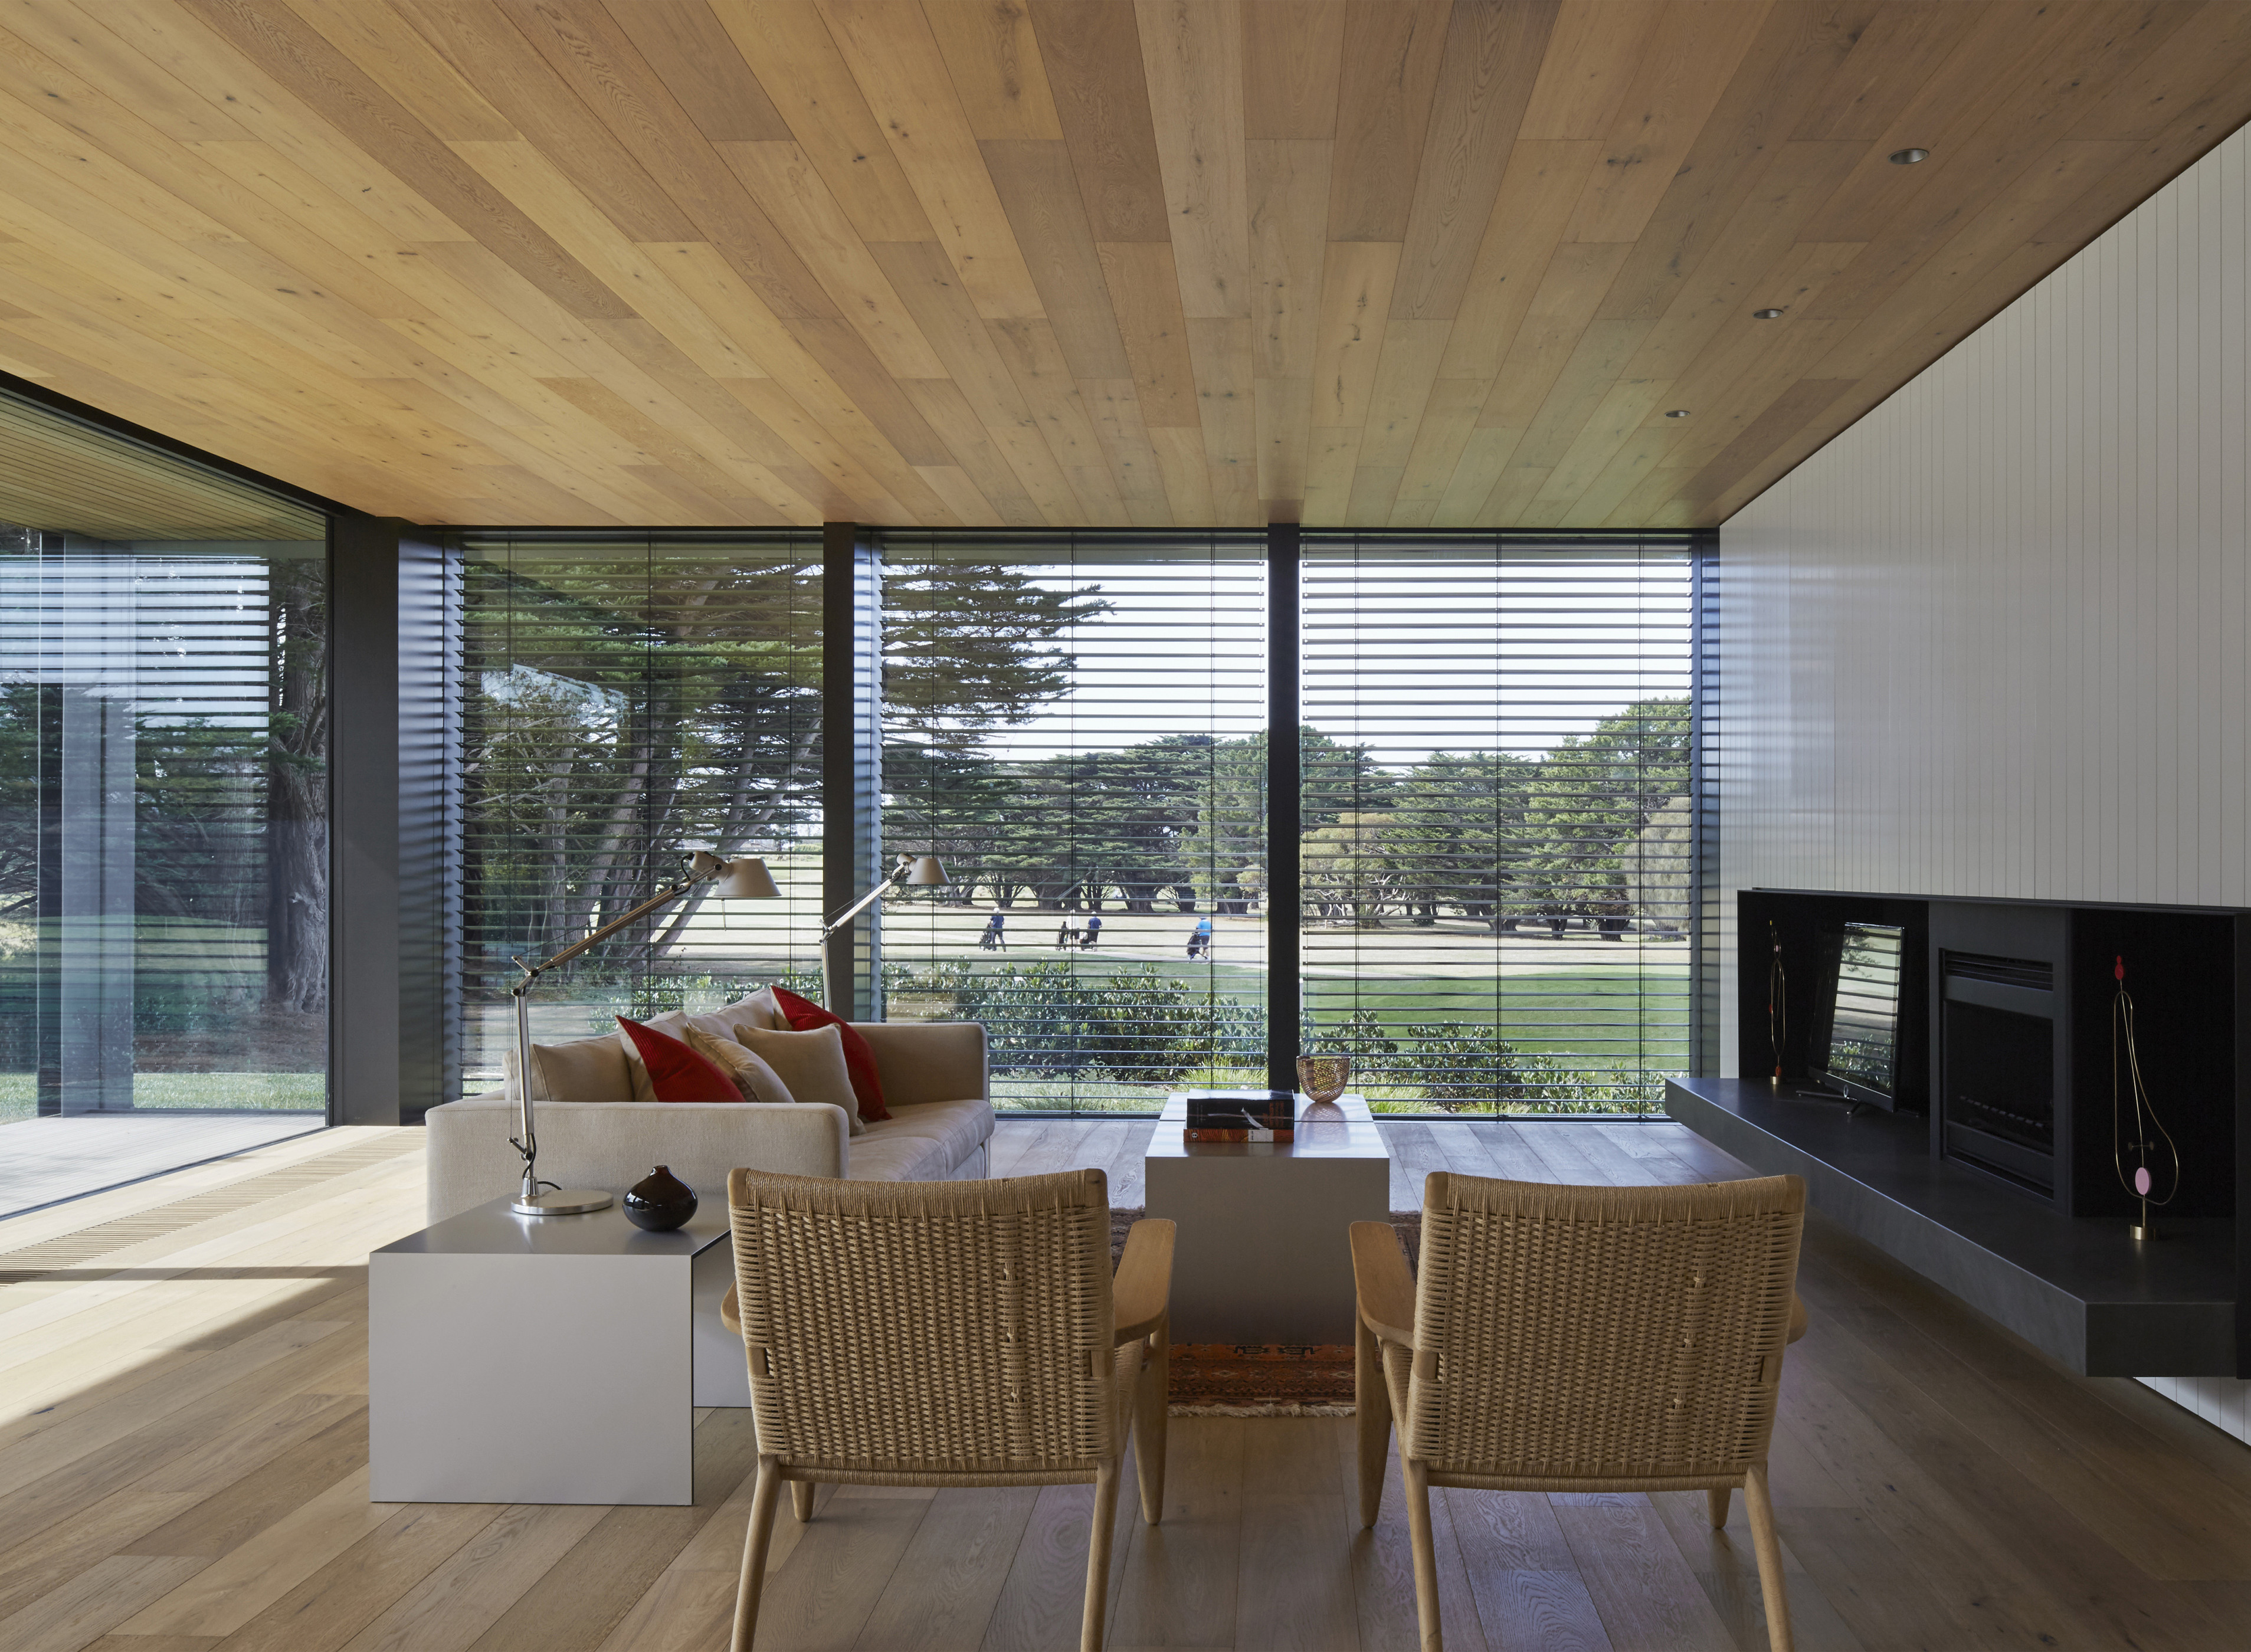 Links Courtyard House: Smaller Scale Allows Higher Quality ...